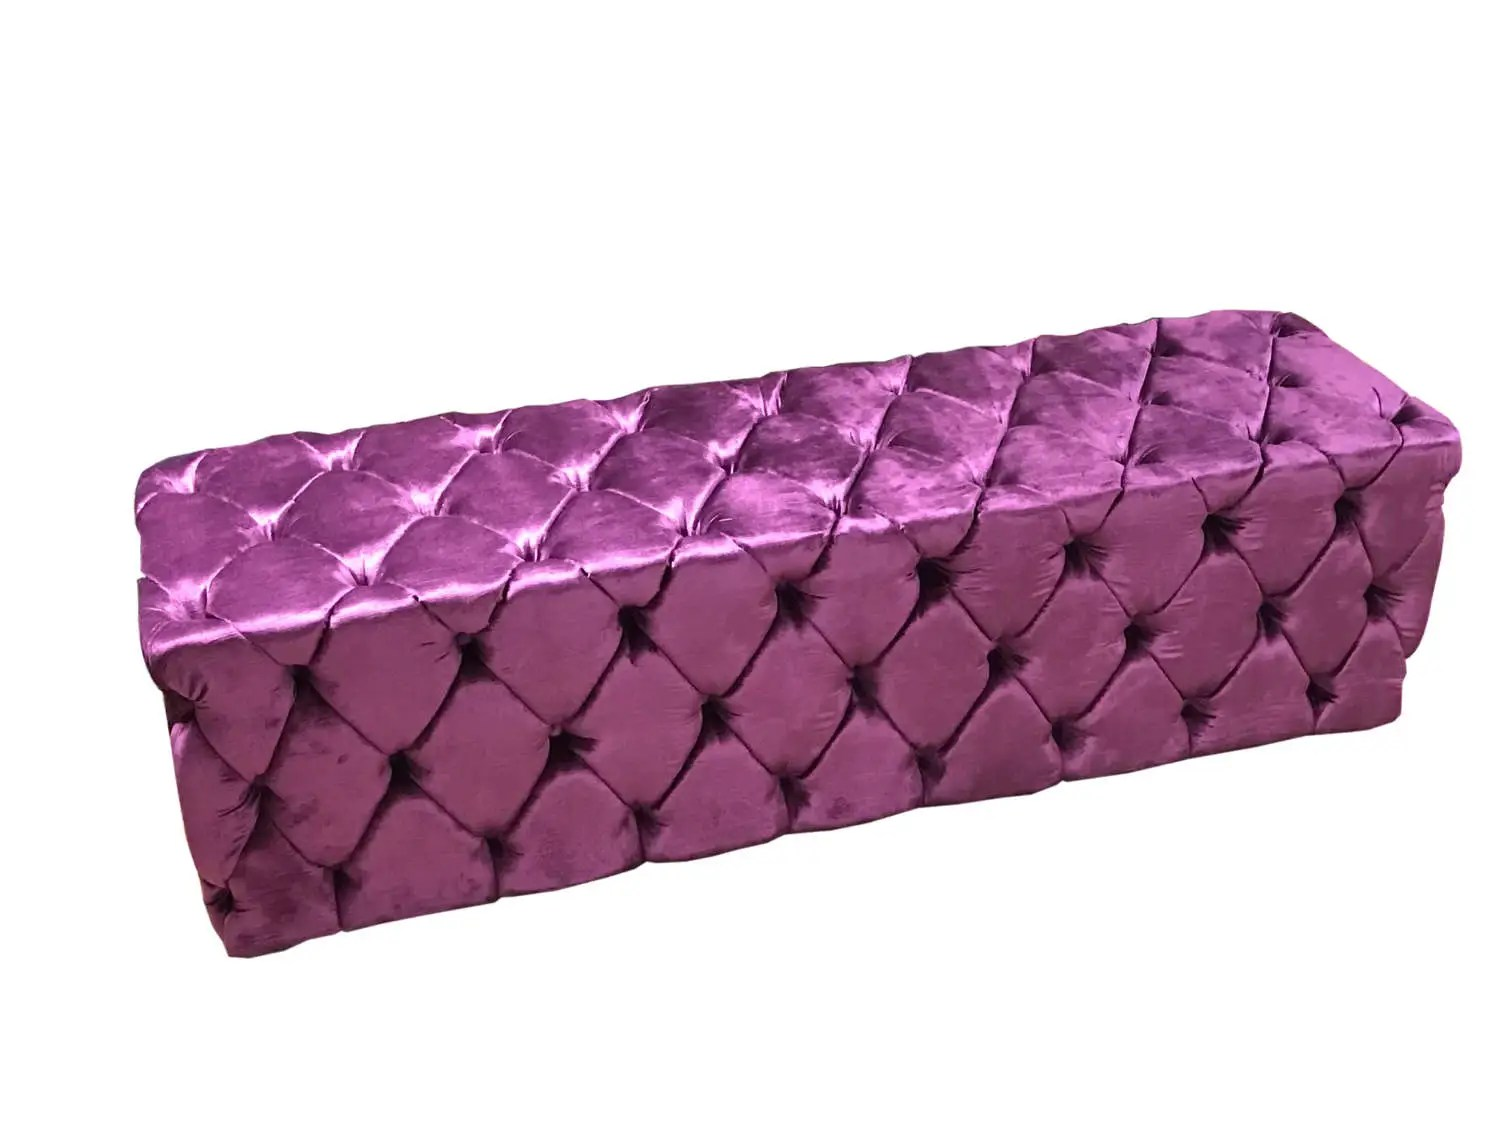 tufted bed bench upholstered bench purple velvet bench side bench tufted bench bedroom bench window bench stool upholstered tufted